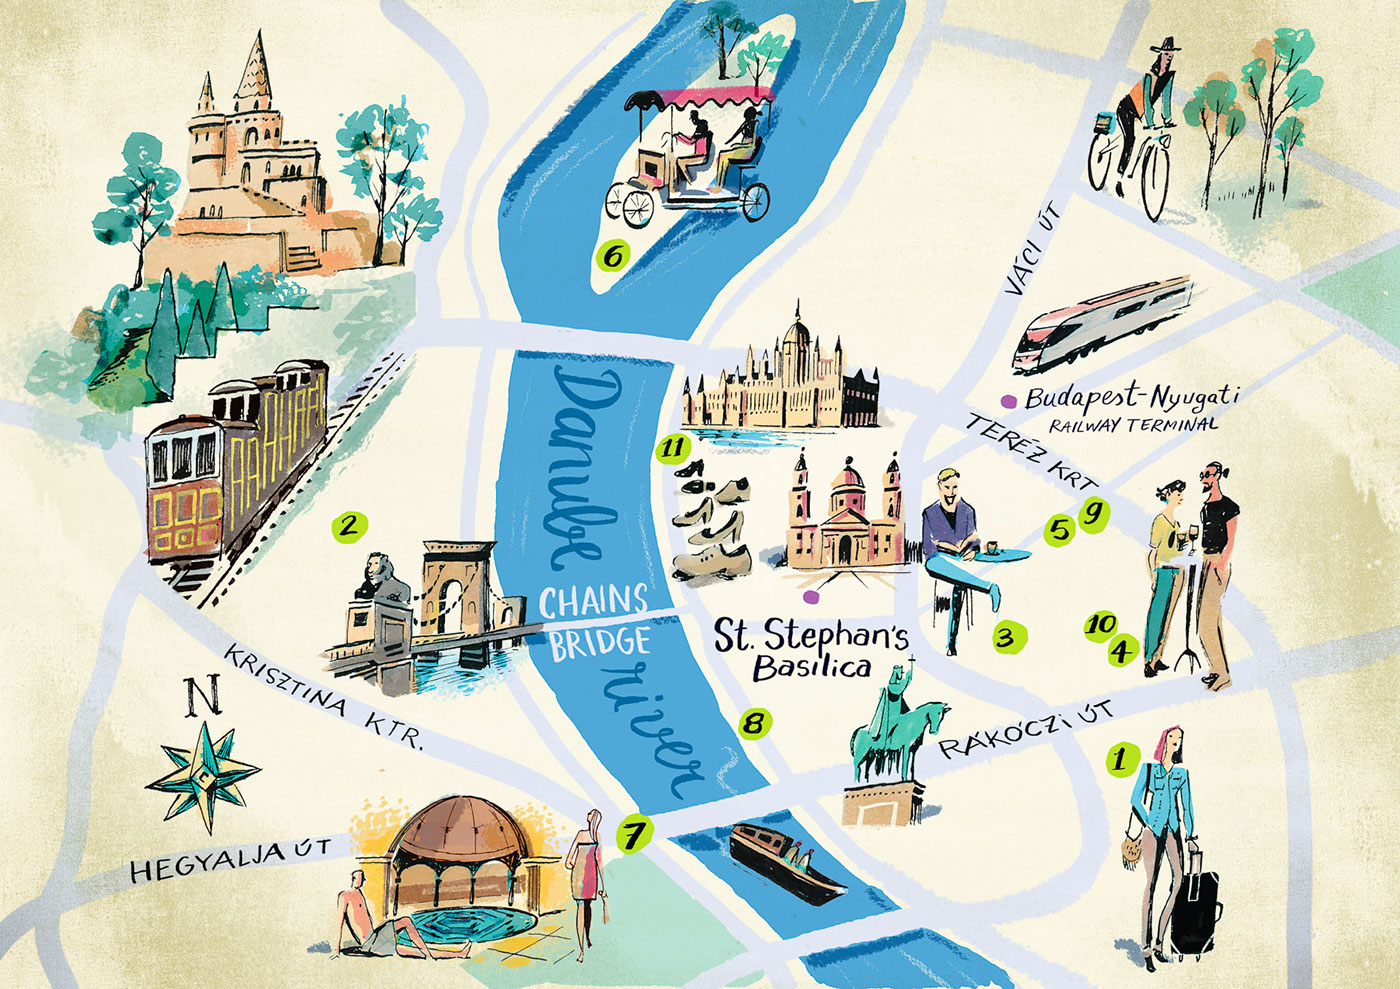 Lonely planet traveller uk perfect weekend maps on behance for Project weekend